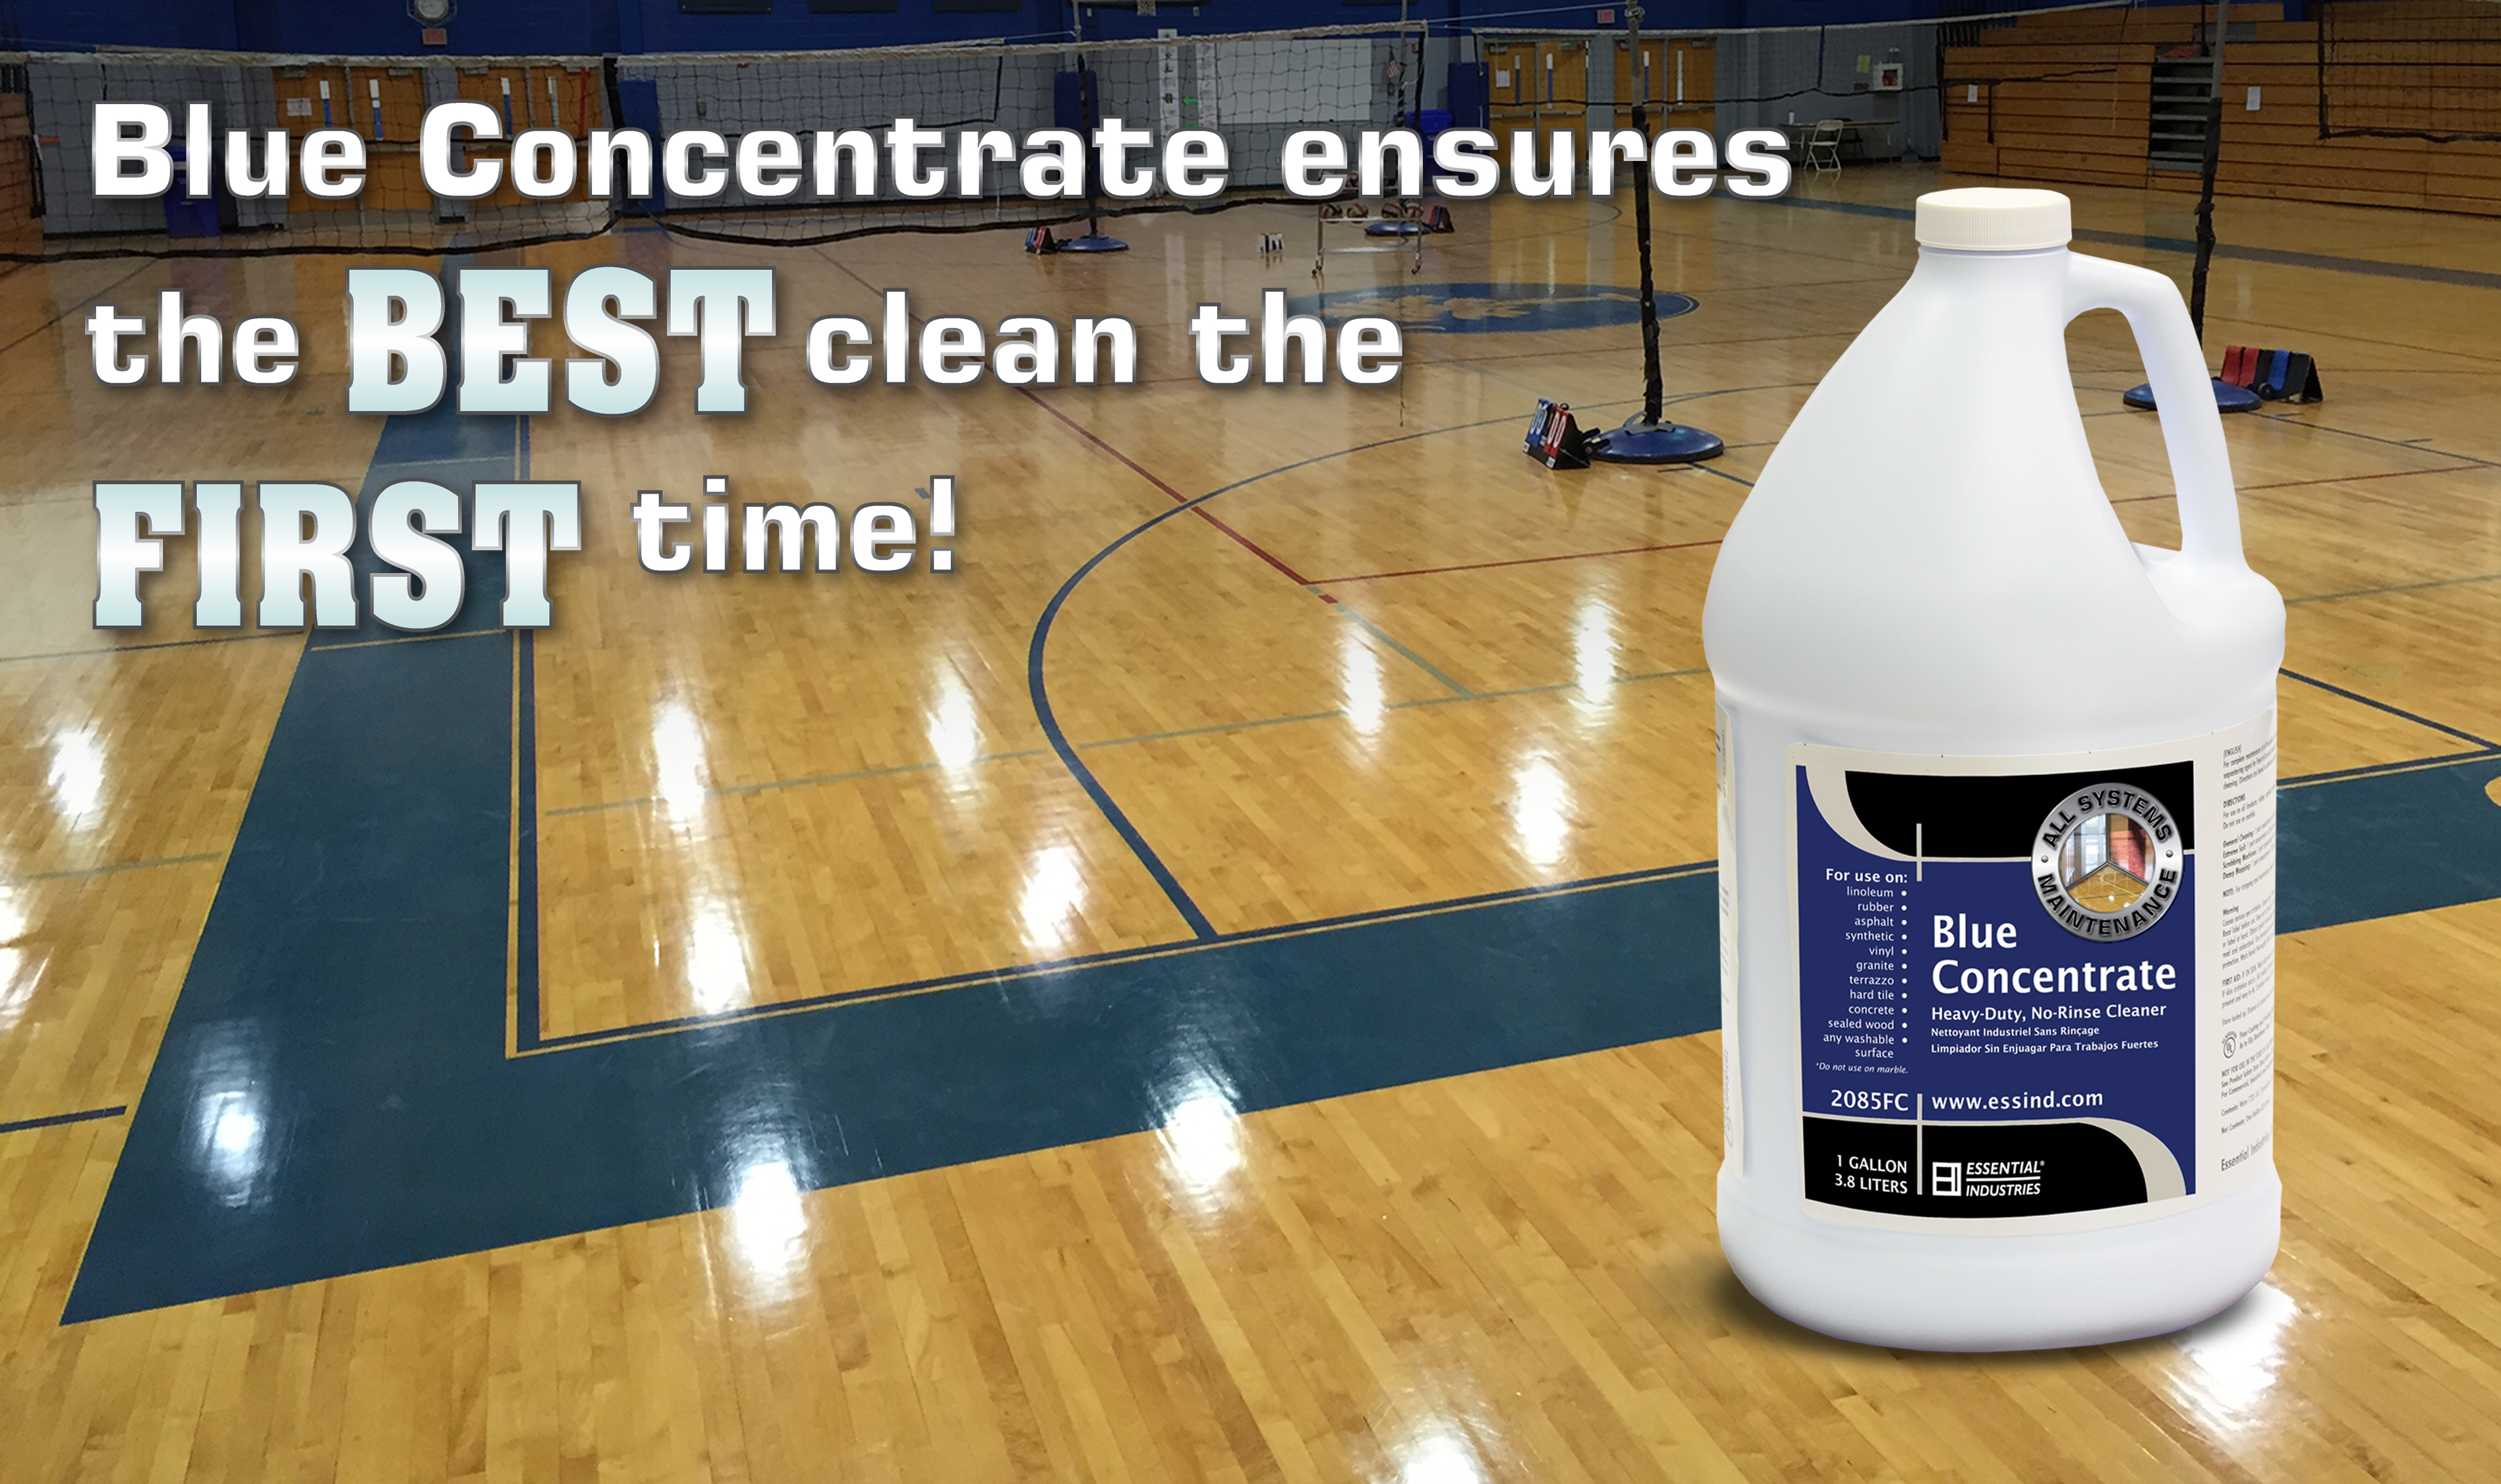 Blue Concentrate ensures the BEST clean the FIRST time!